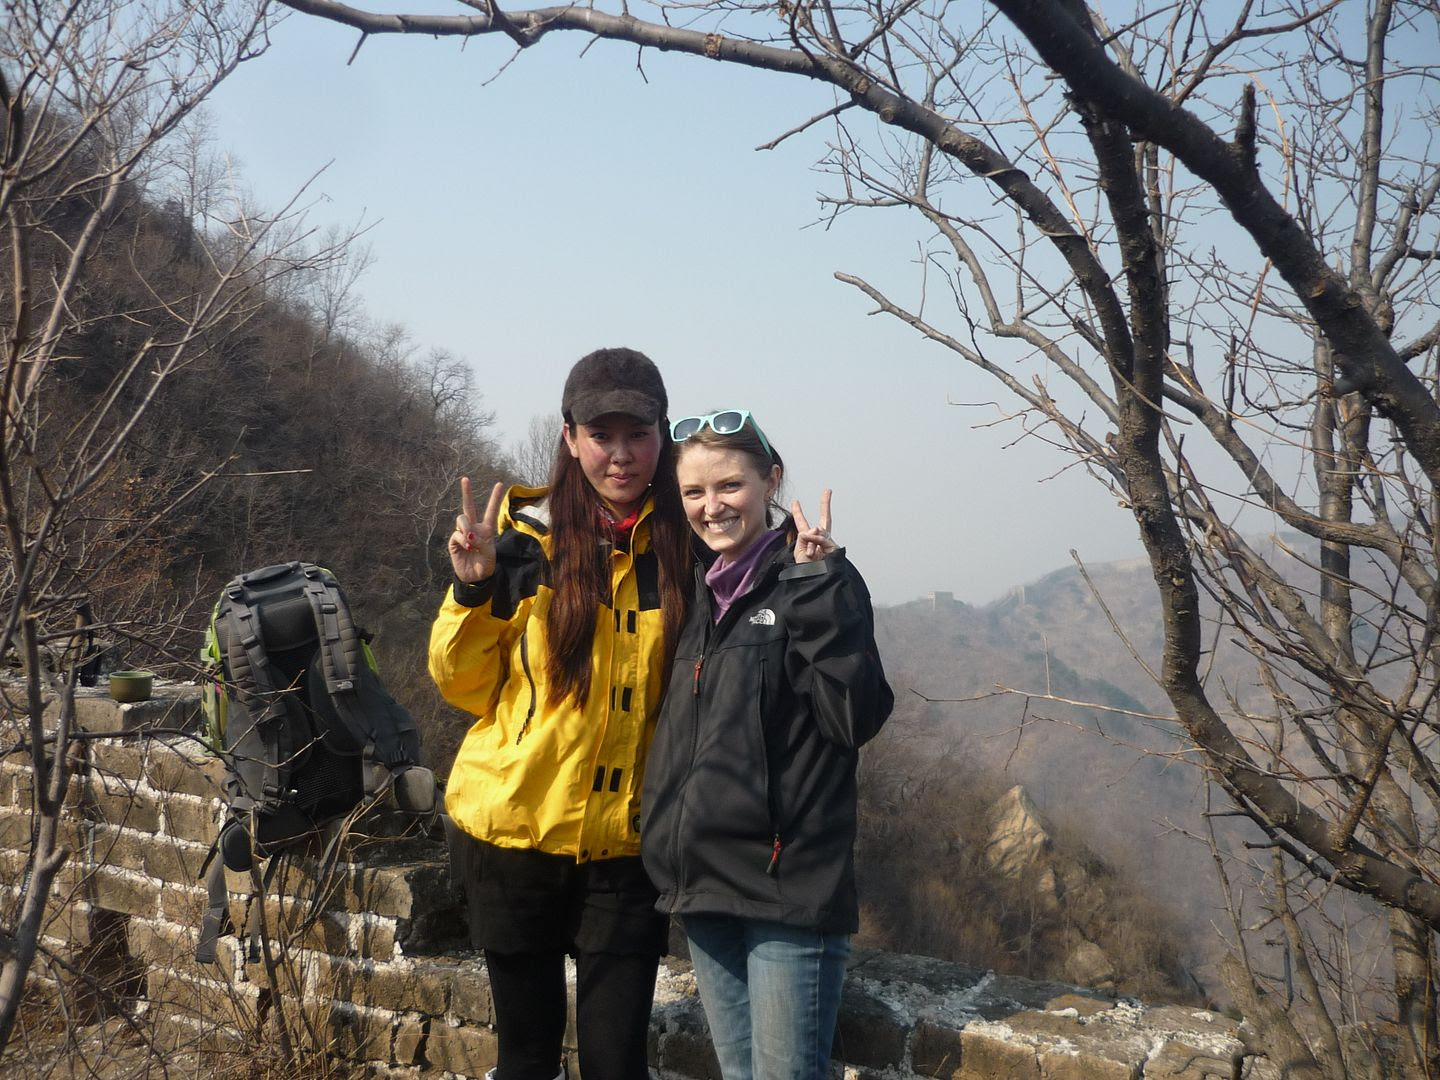 The Great Wall Hike With Miao photo 2014-03-08051551_zps36a341b9.jpg